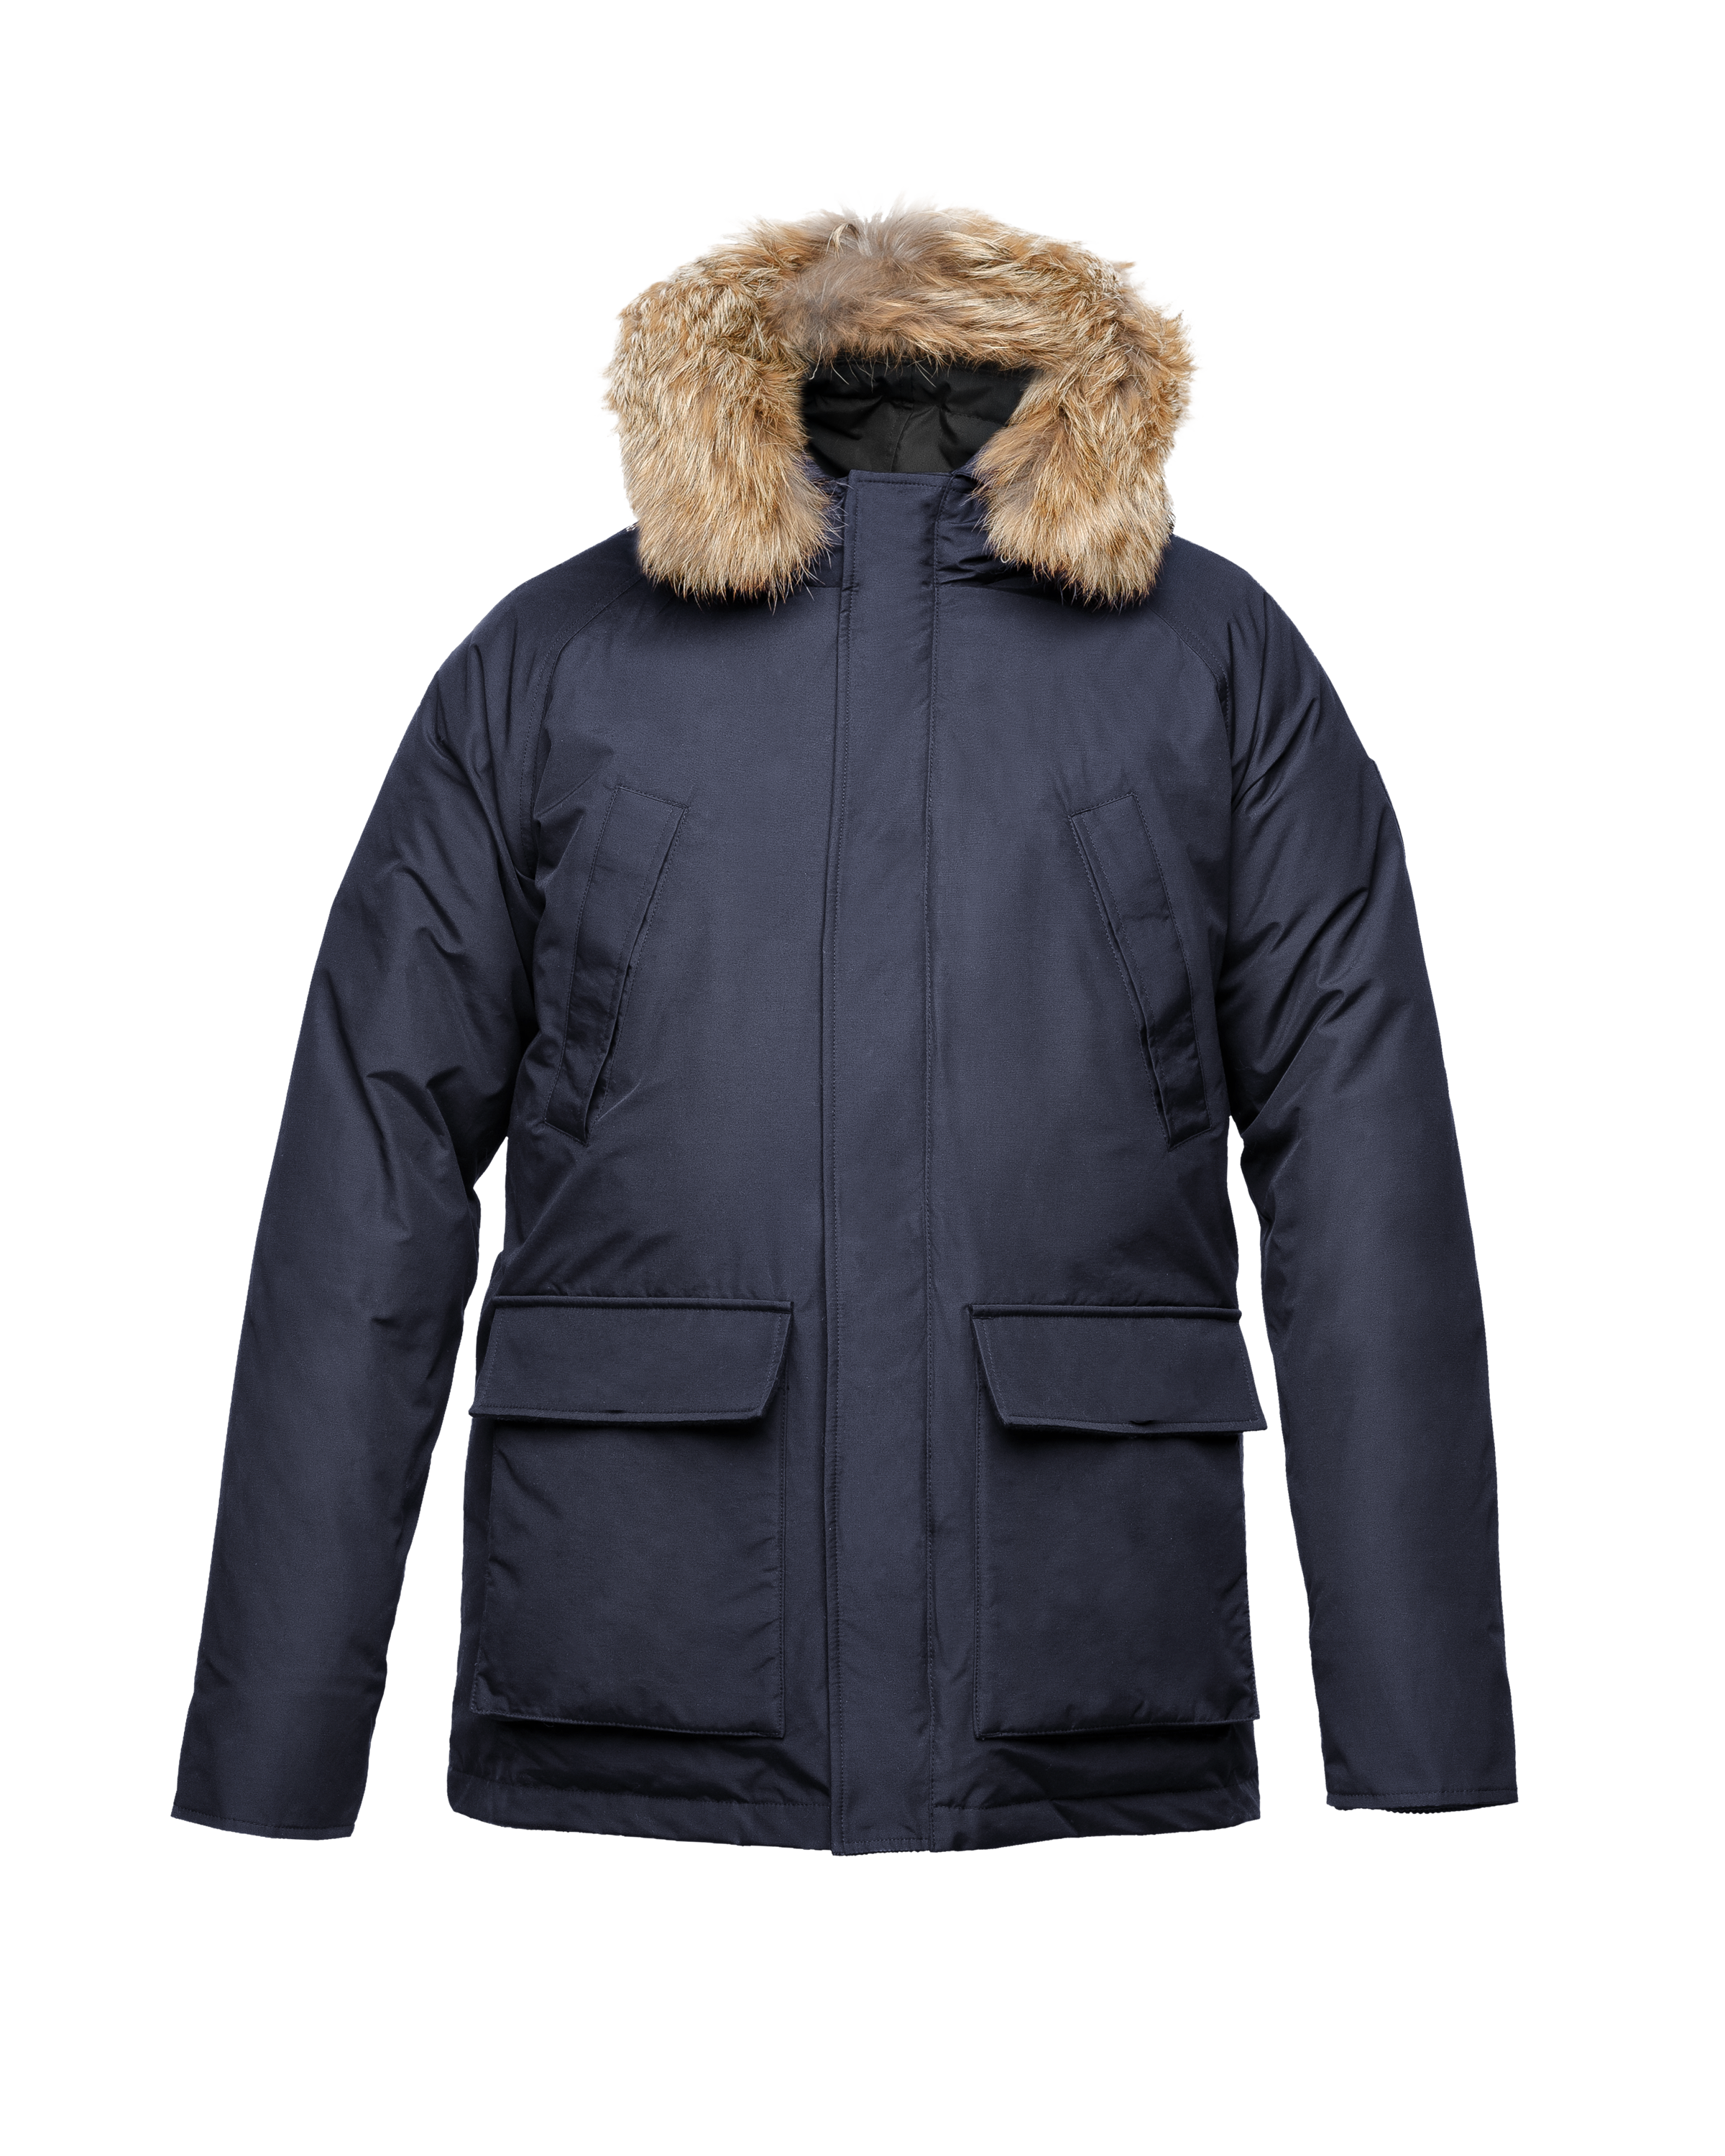 Men's waist length down filled jacket with two front pockets with magnetic closure and a removable fur trim on the hood in CH Navy | color